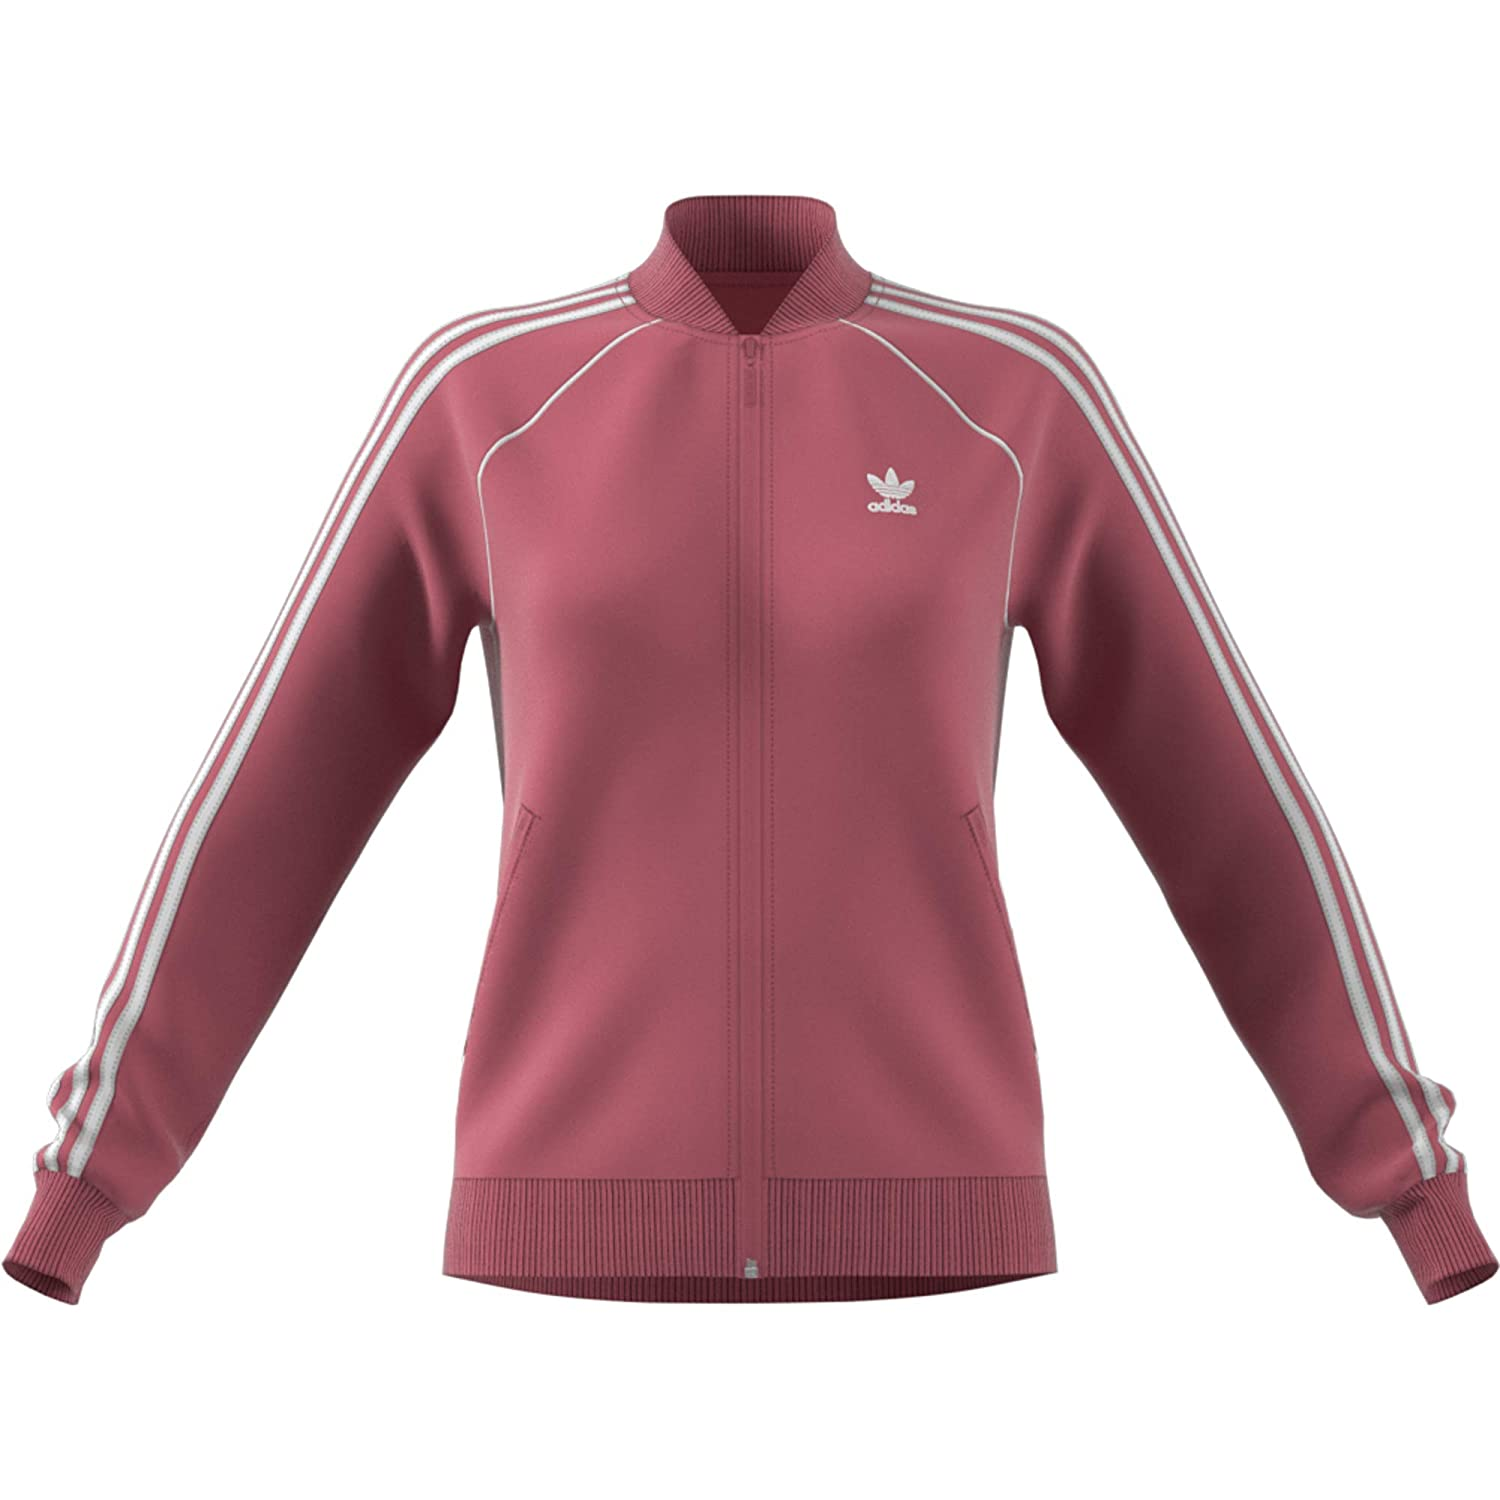 adidas Donna SST TT Jacket: Amazon.co.uk: Clothing